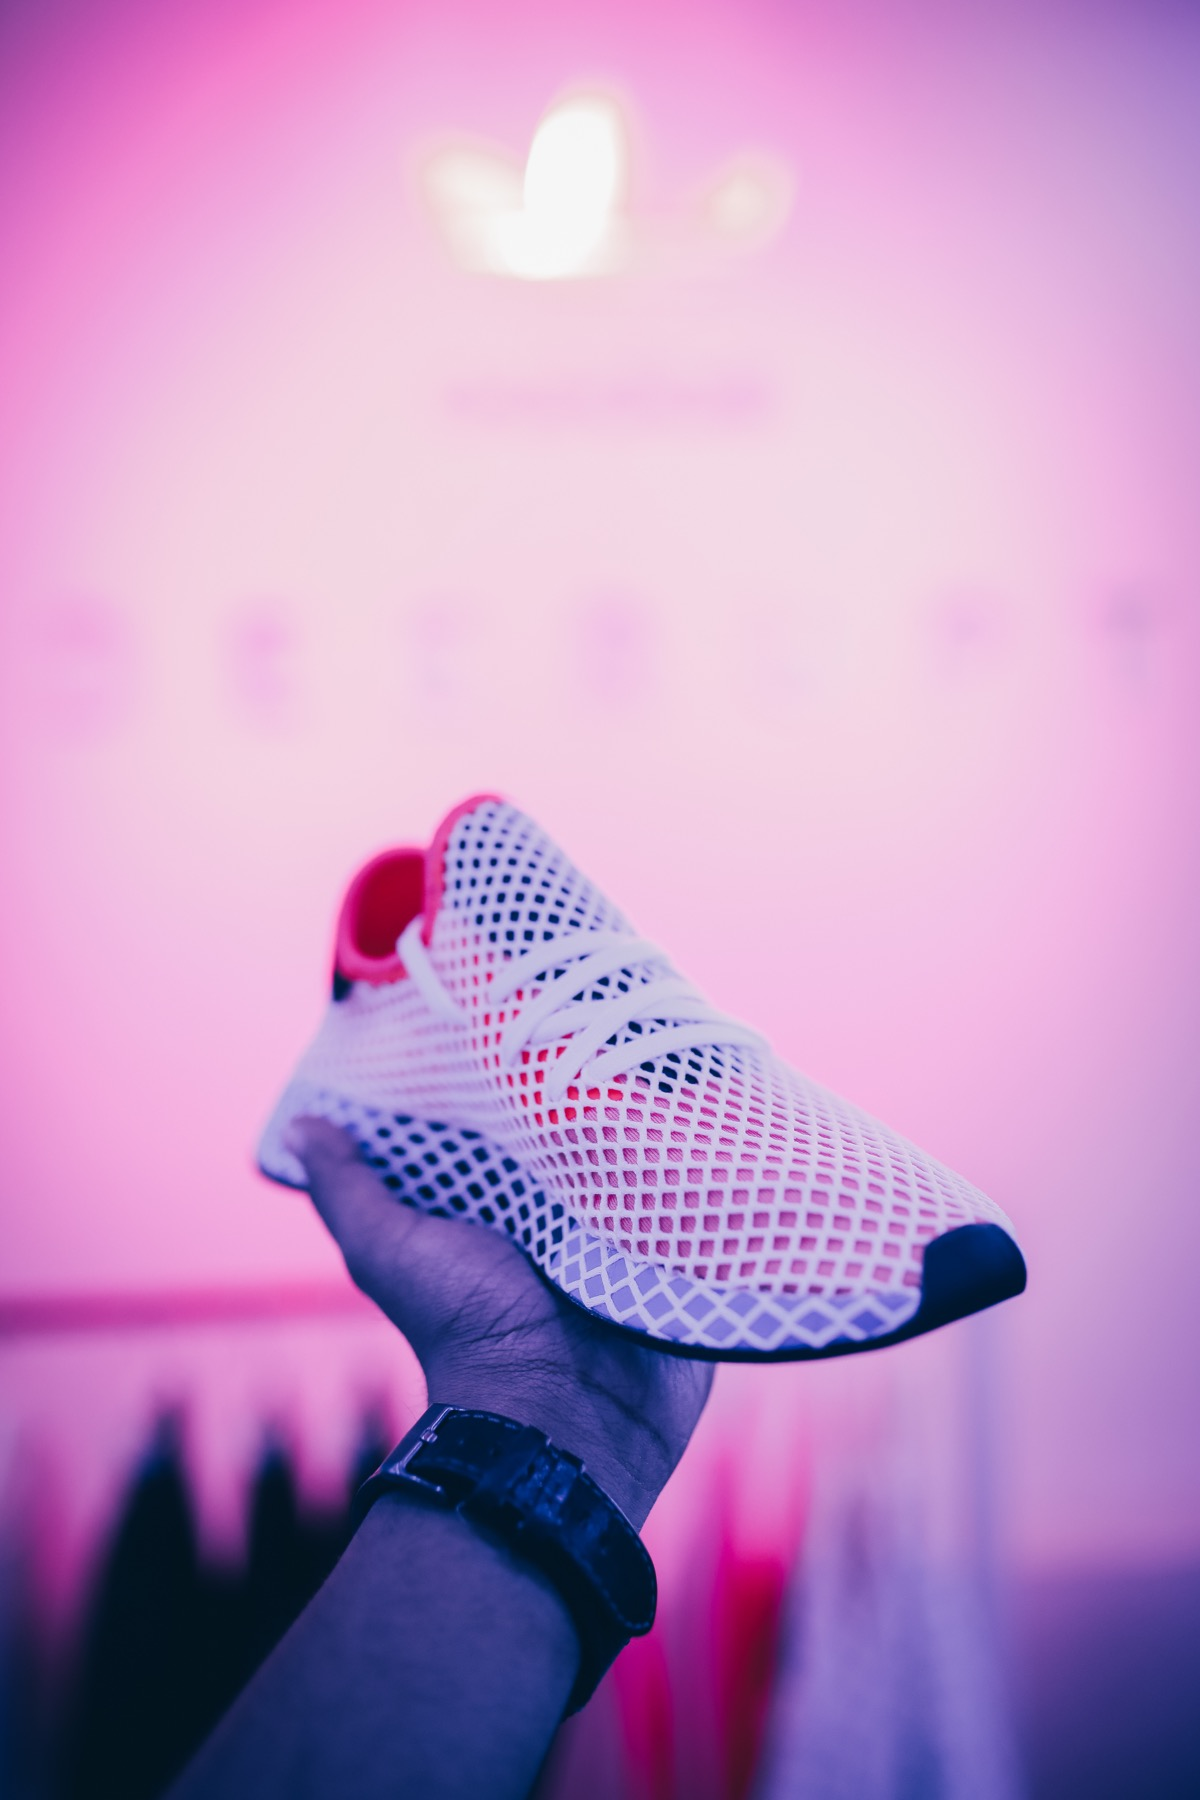 Homegrown India presents HGStreet in Mumbai on March 18, 2018, a celebration of sneaker and street culture - launch of adidas Deerupt by adidas Originals at the Deerupt Experience976A6034.jpg